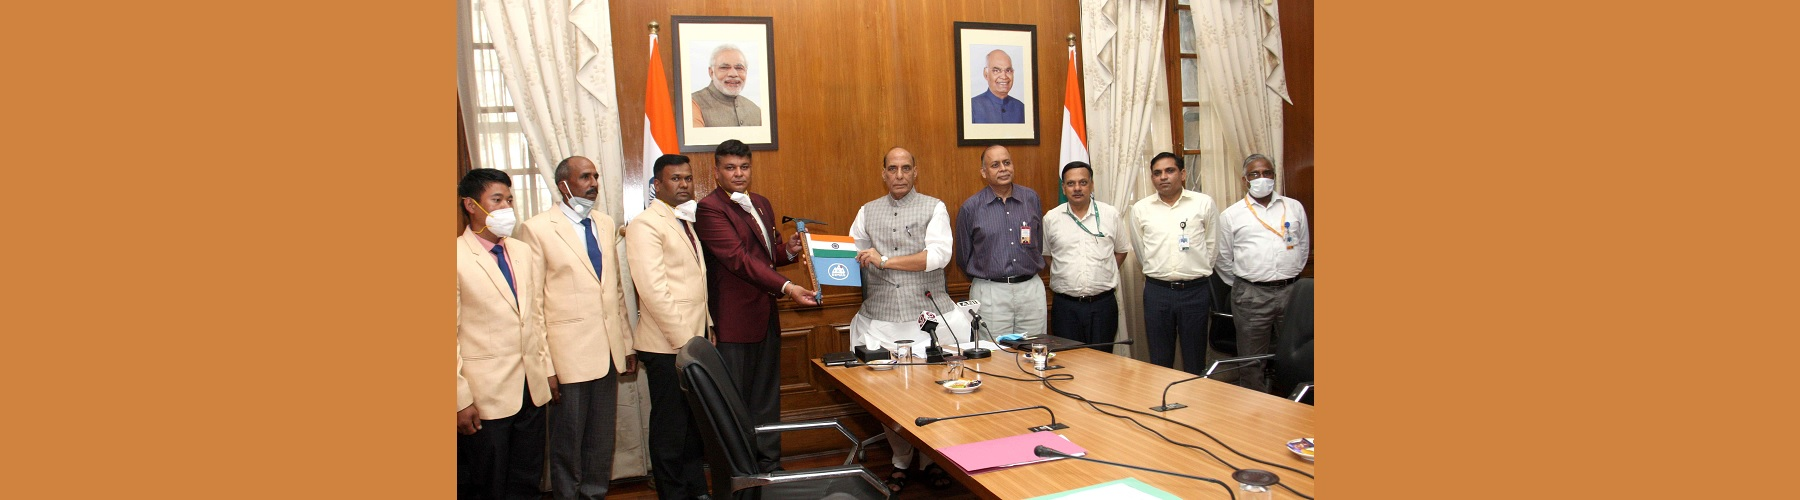 Raksha Mantri Shri Rajnath Singh during the flag-in ceremony of a team of National Institute of Mountaineering & Allied Sports, Dirang, which scaled Mount Kun (7,077 metres), in New Delhi on September 20, 2021